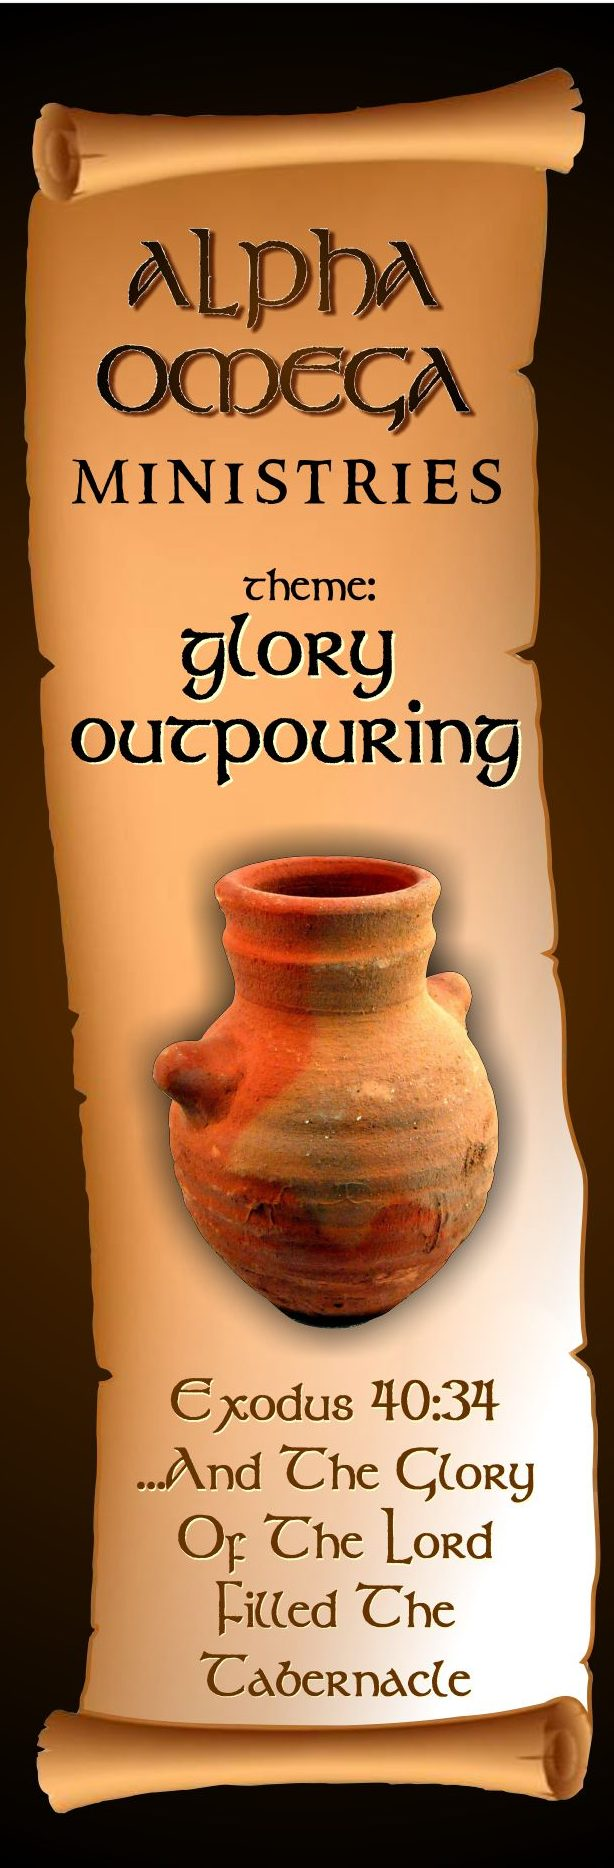 alpha, omega, ministry, ministries, theme, glory, outpouring, clay, vase, exodus, 40, 40:, 34, :34, lord, filled, tabernacle, religion, faith, belief, christian, christianity, brown, black, scroll, paper, papyrus,  religious, advertising, banners